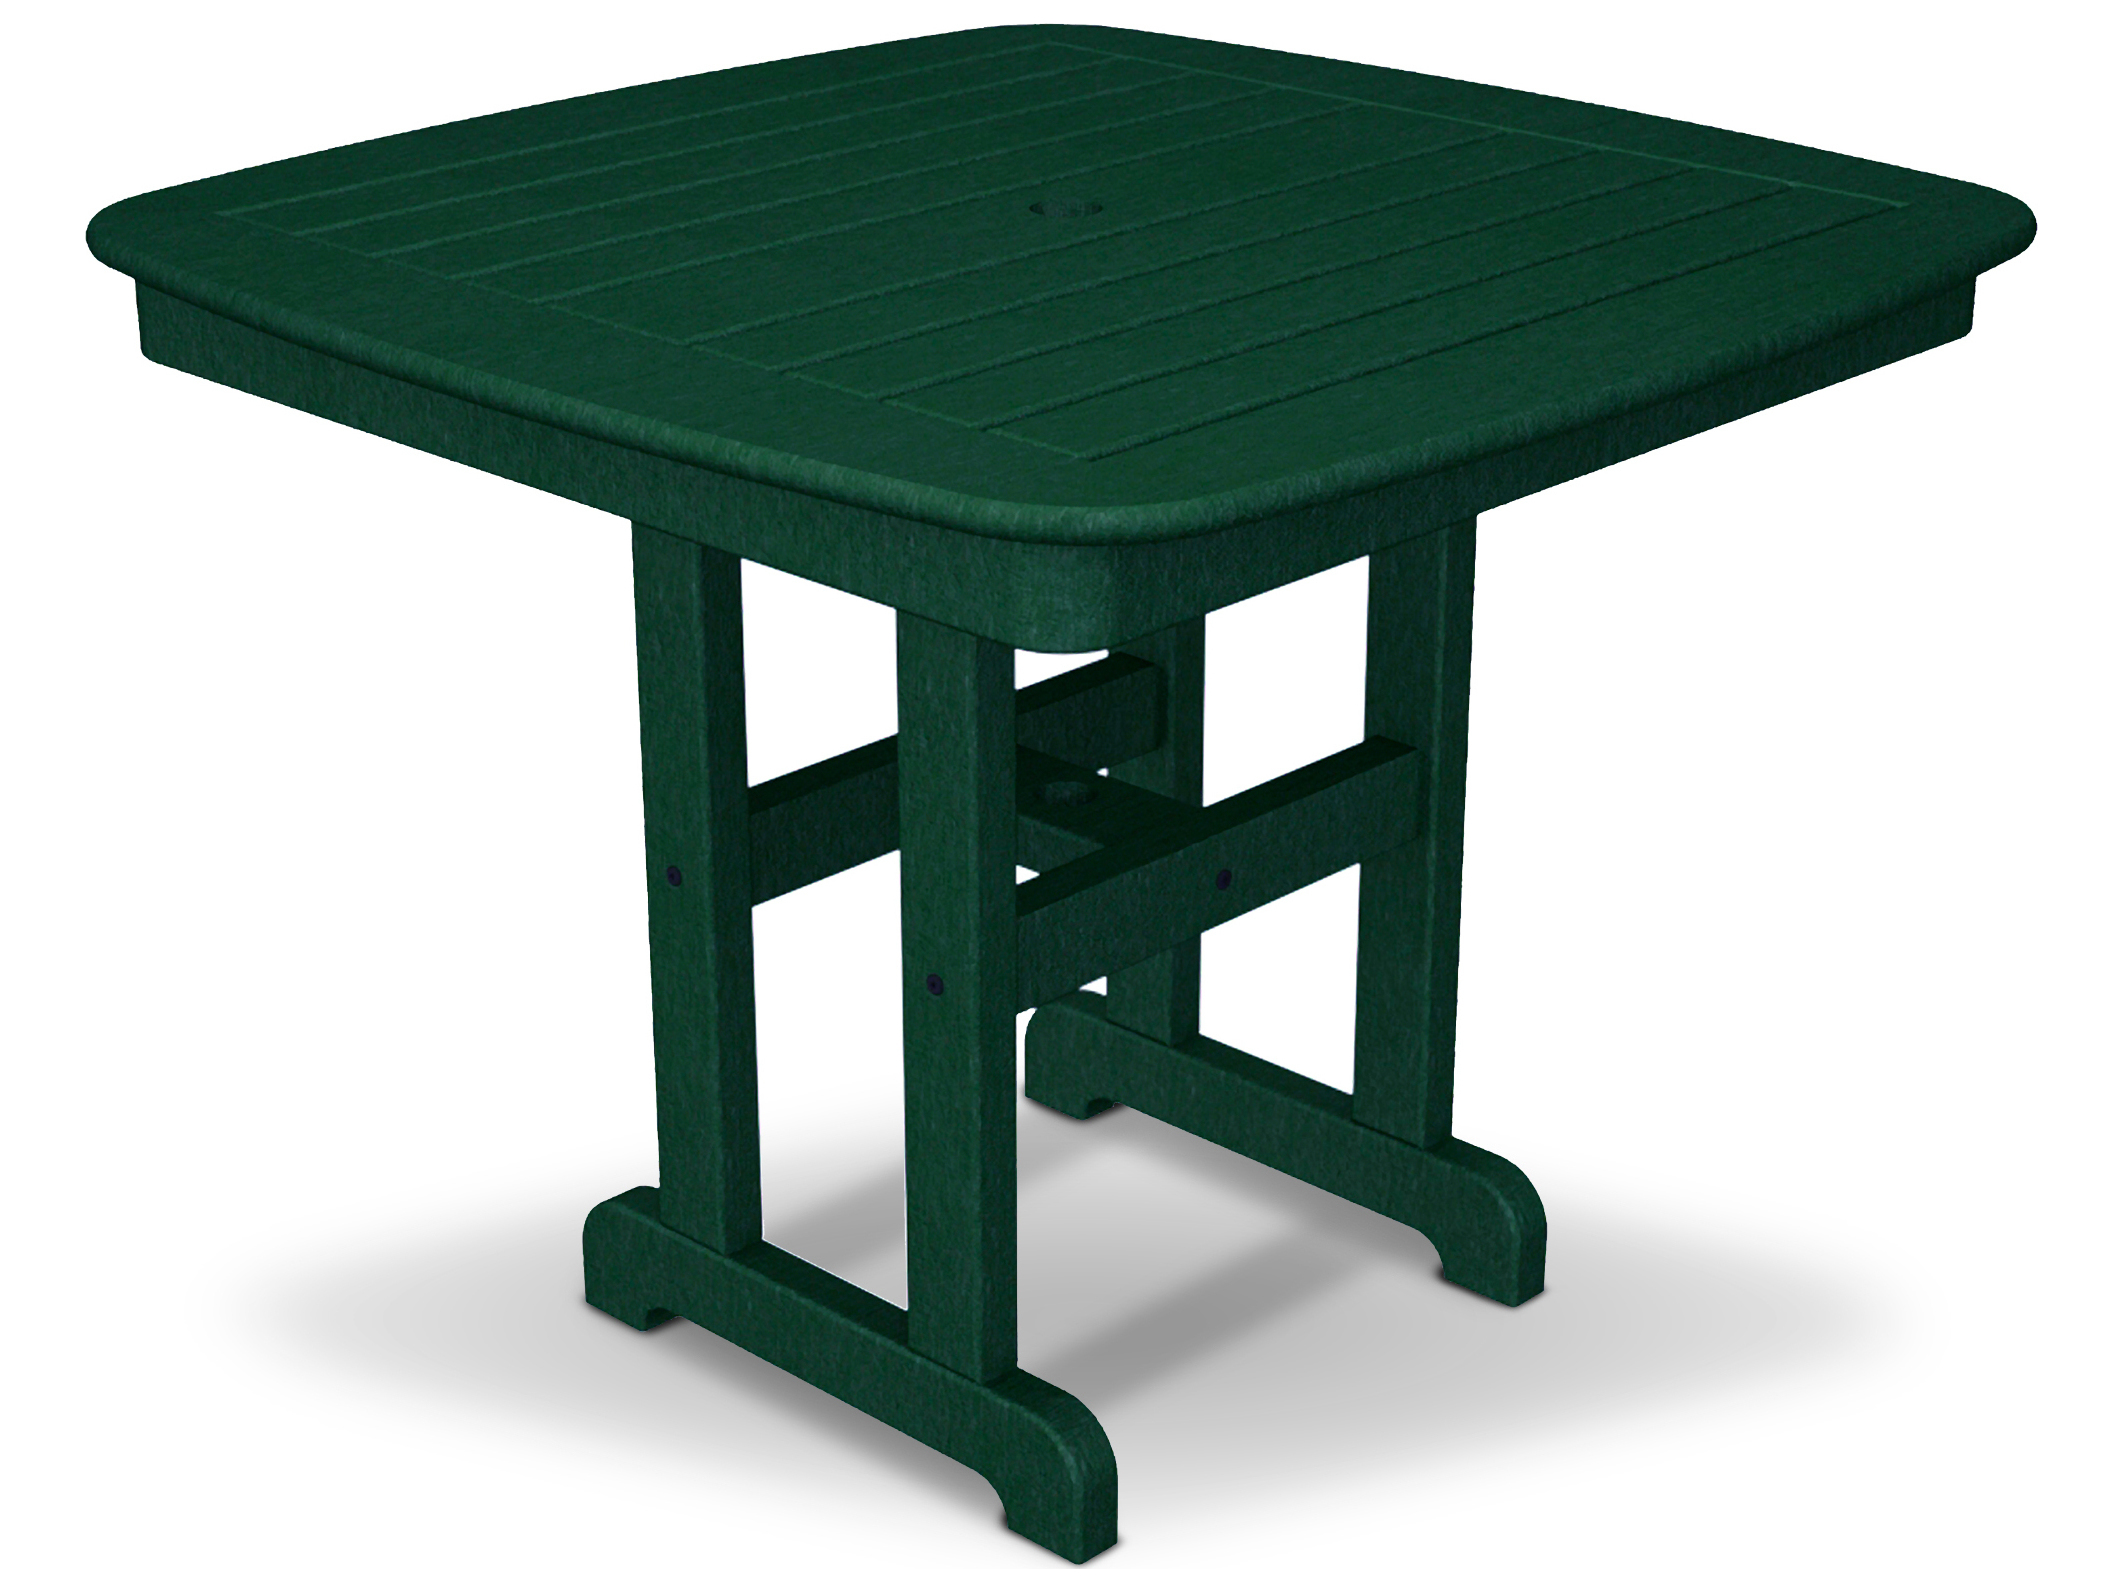 trex yacht club recycled plastic 37 square dining table